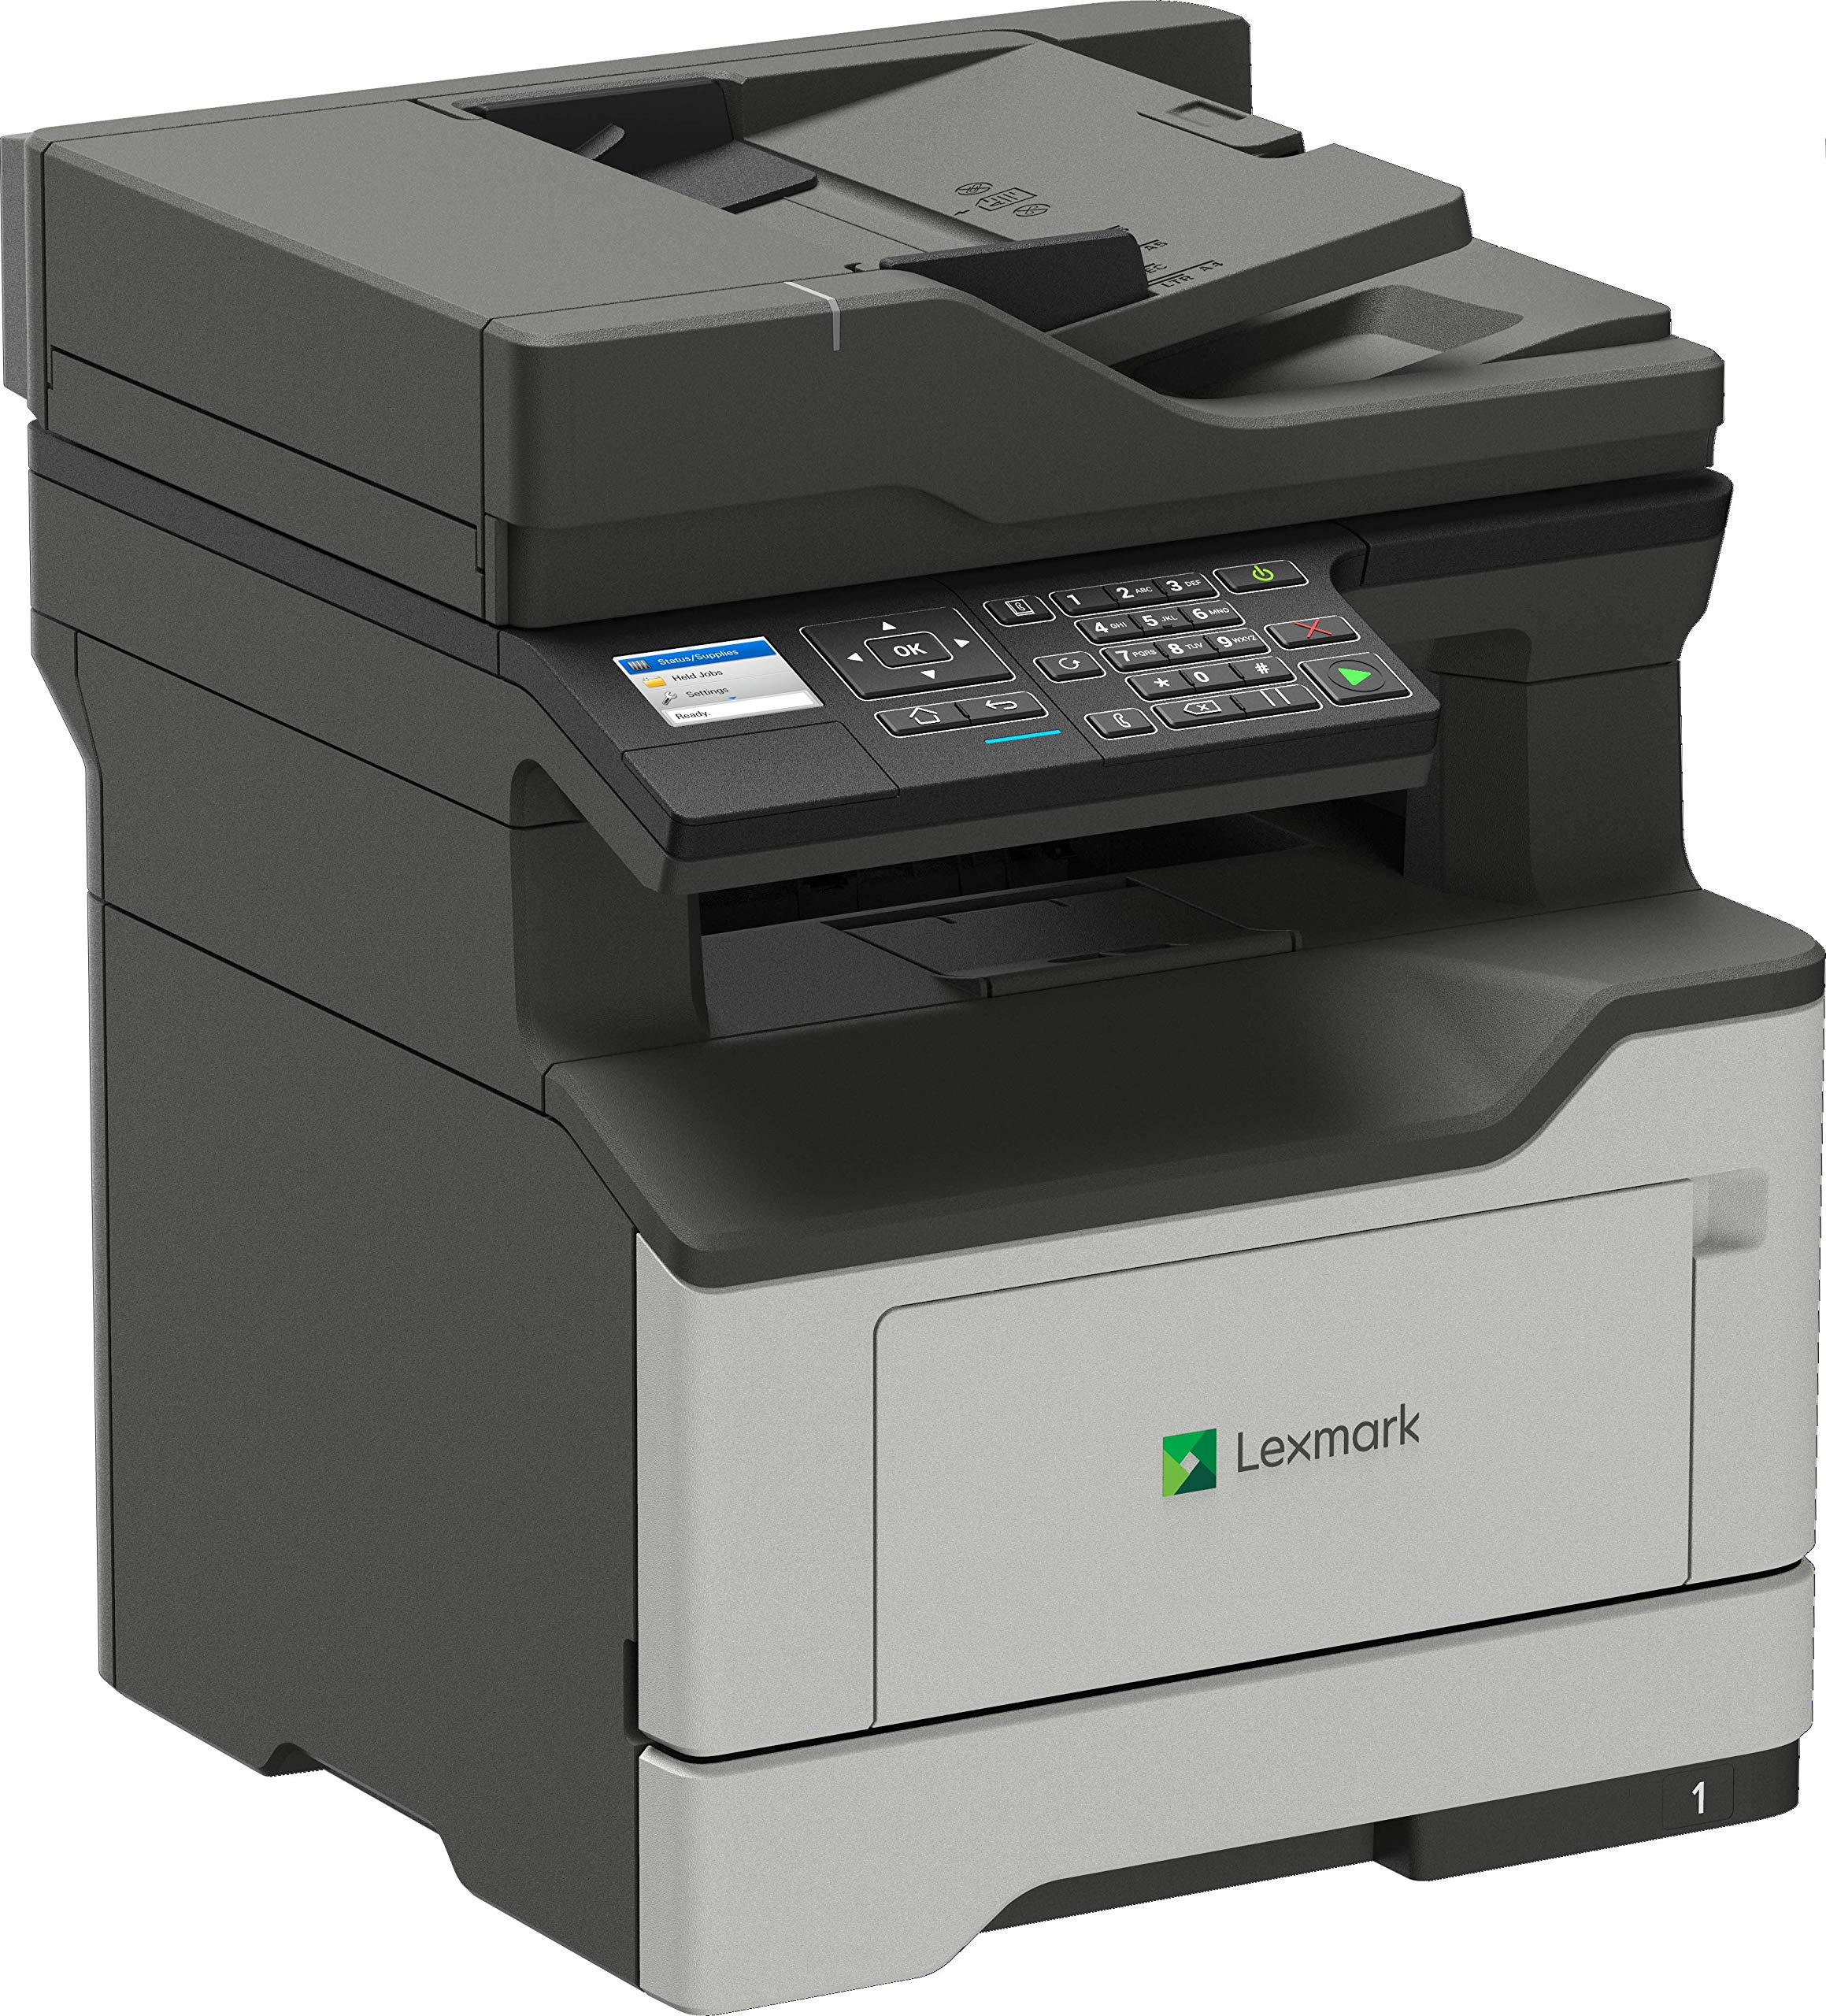 Lexmark MB2338adw Print Only Monochrome Laser Printer Duplex Two Sided Printing Wireless Network & Airprint Ready (36SC640)